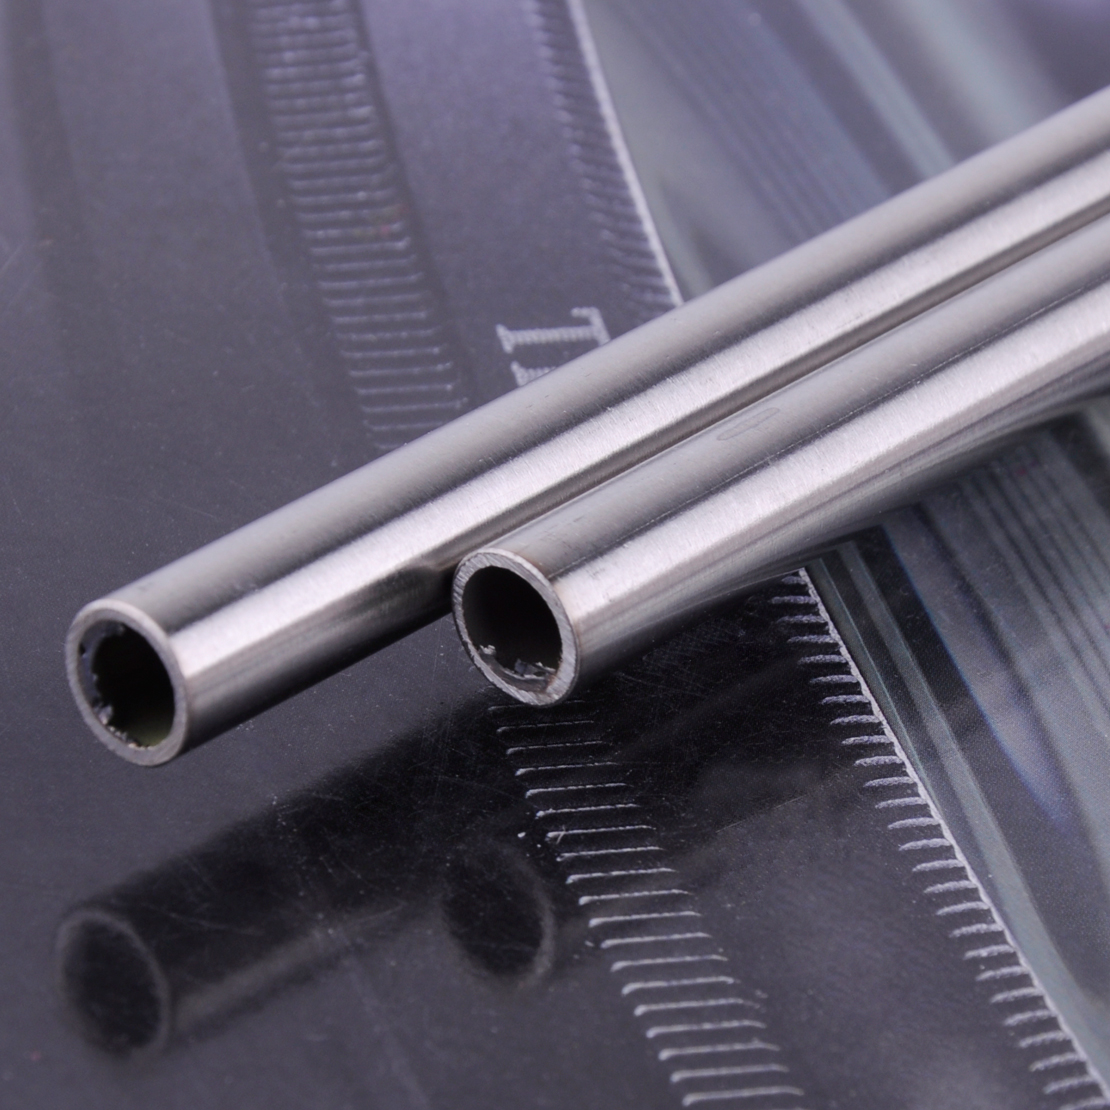 LETAOSK High Quality 2pcs 304 Stainless Steel Capillary Tube Pipe OD 10mm ID 8mm Length 0.5M 500mm